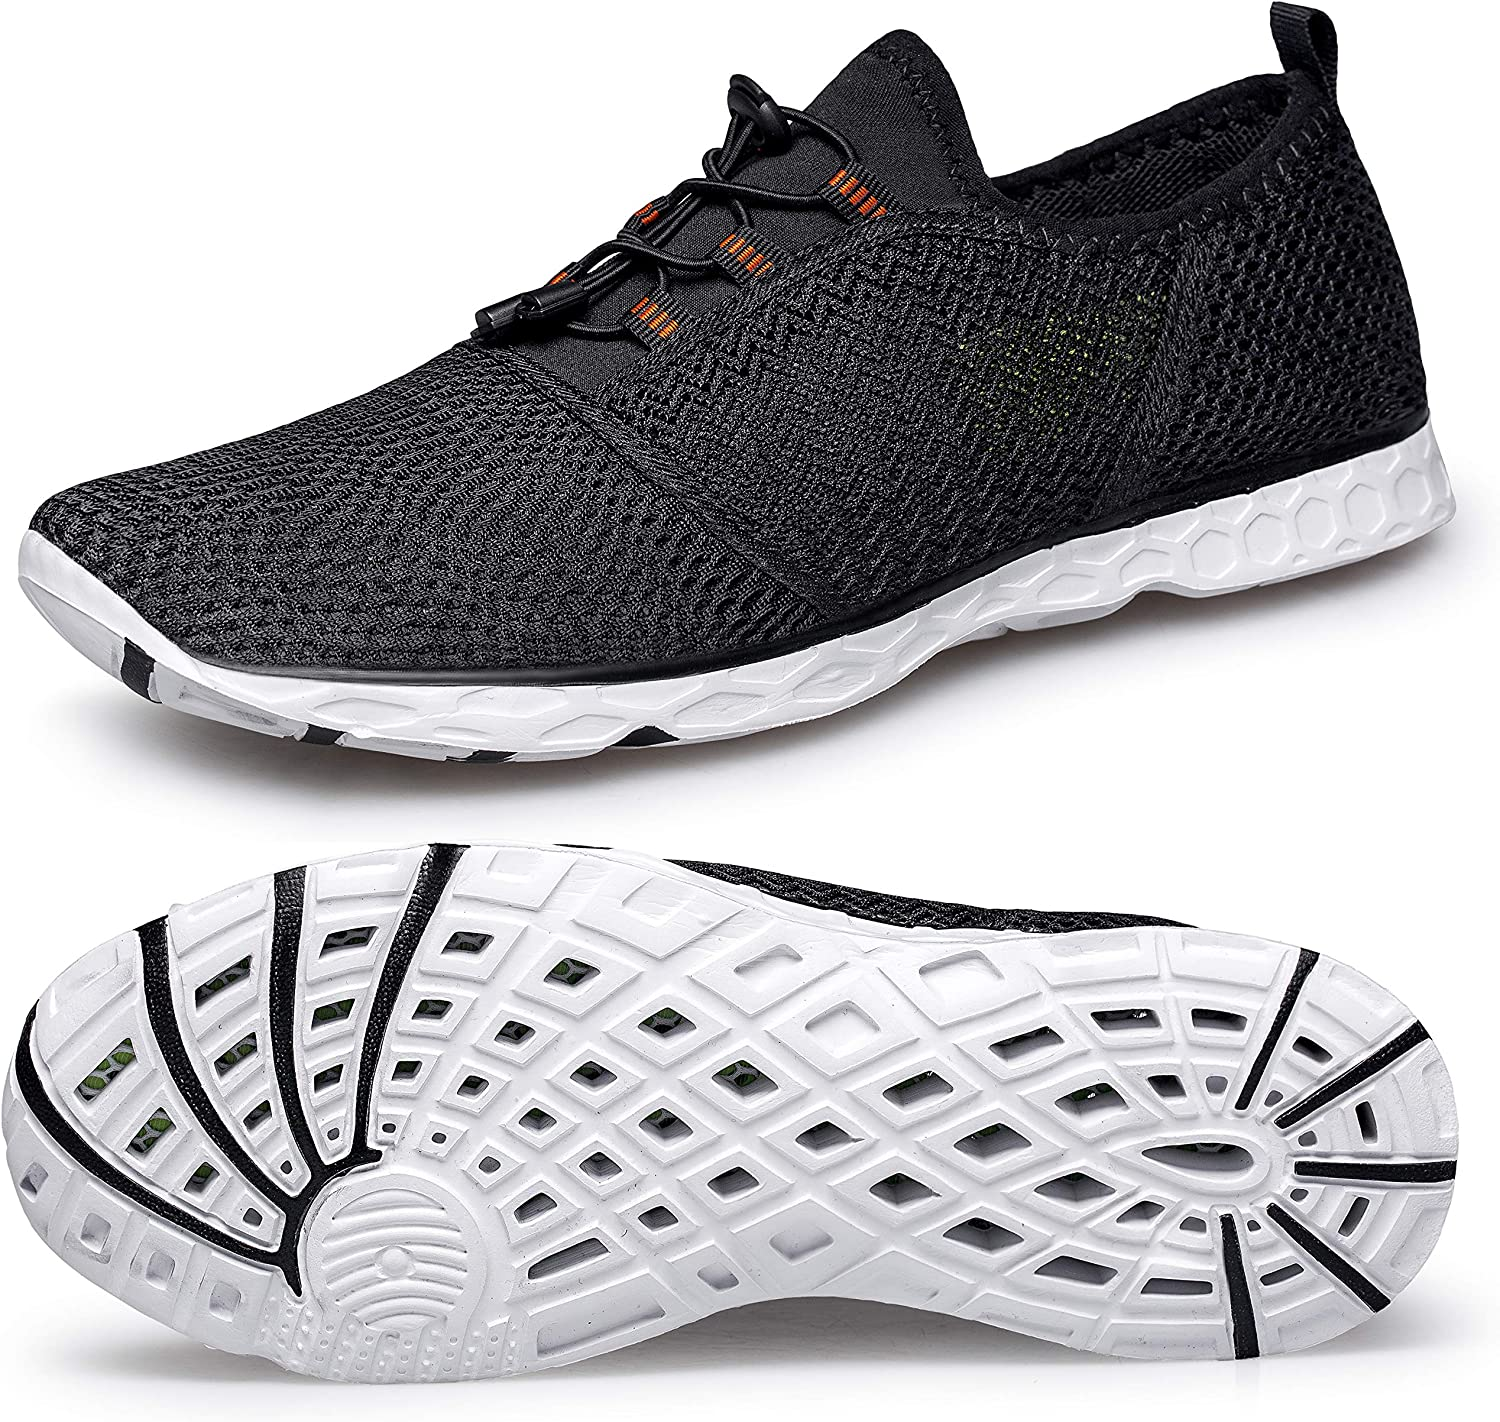 Aqua Water shoes Men Women - Quick-Dry Lightweight for Summer Water Sports Outdoor Beach Pool Exercise